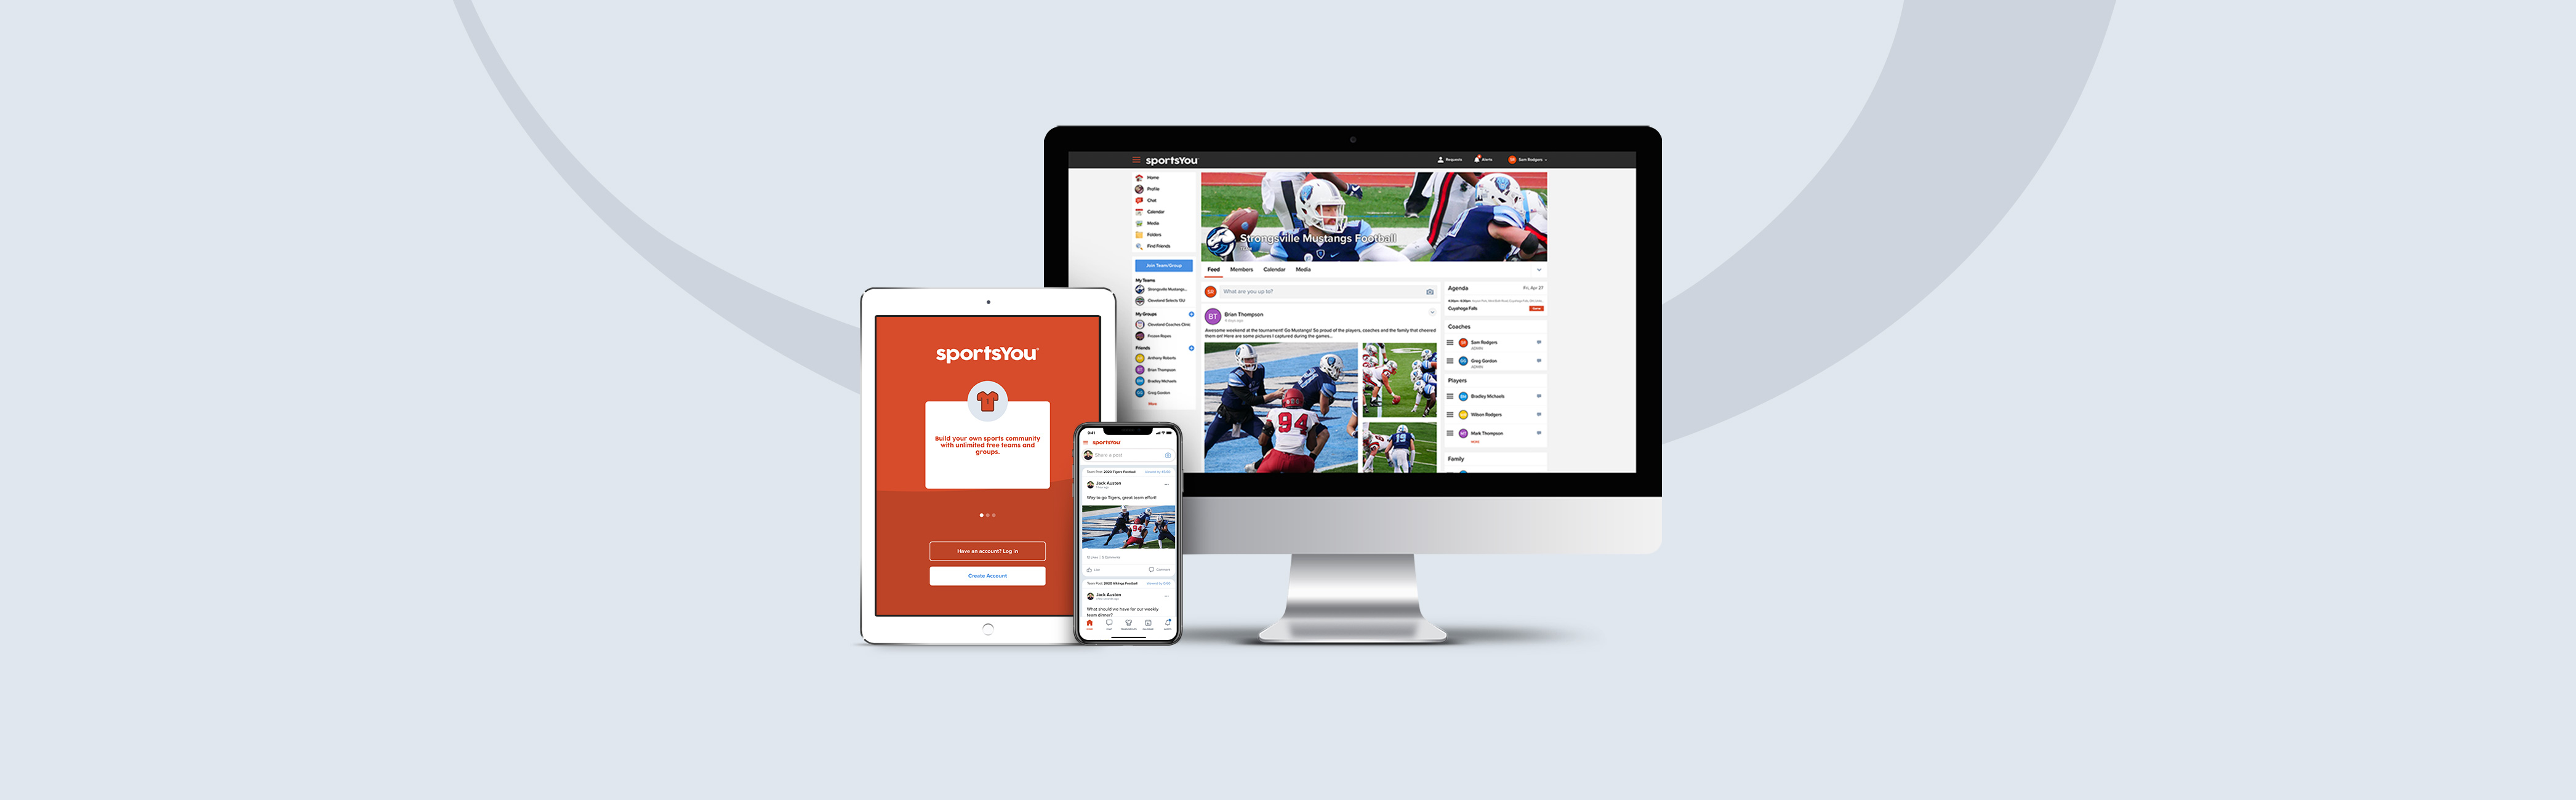 sportsYou for organizations